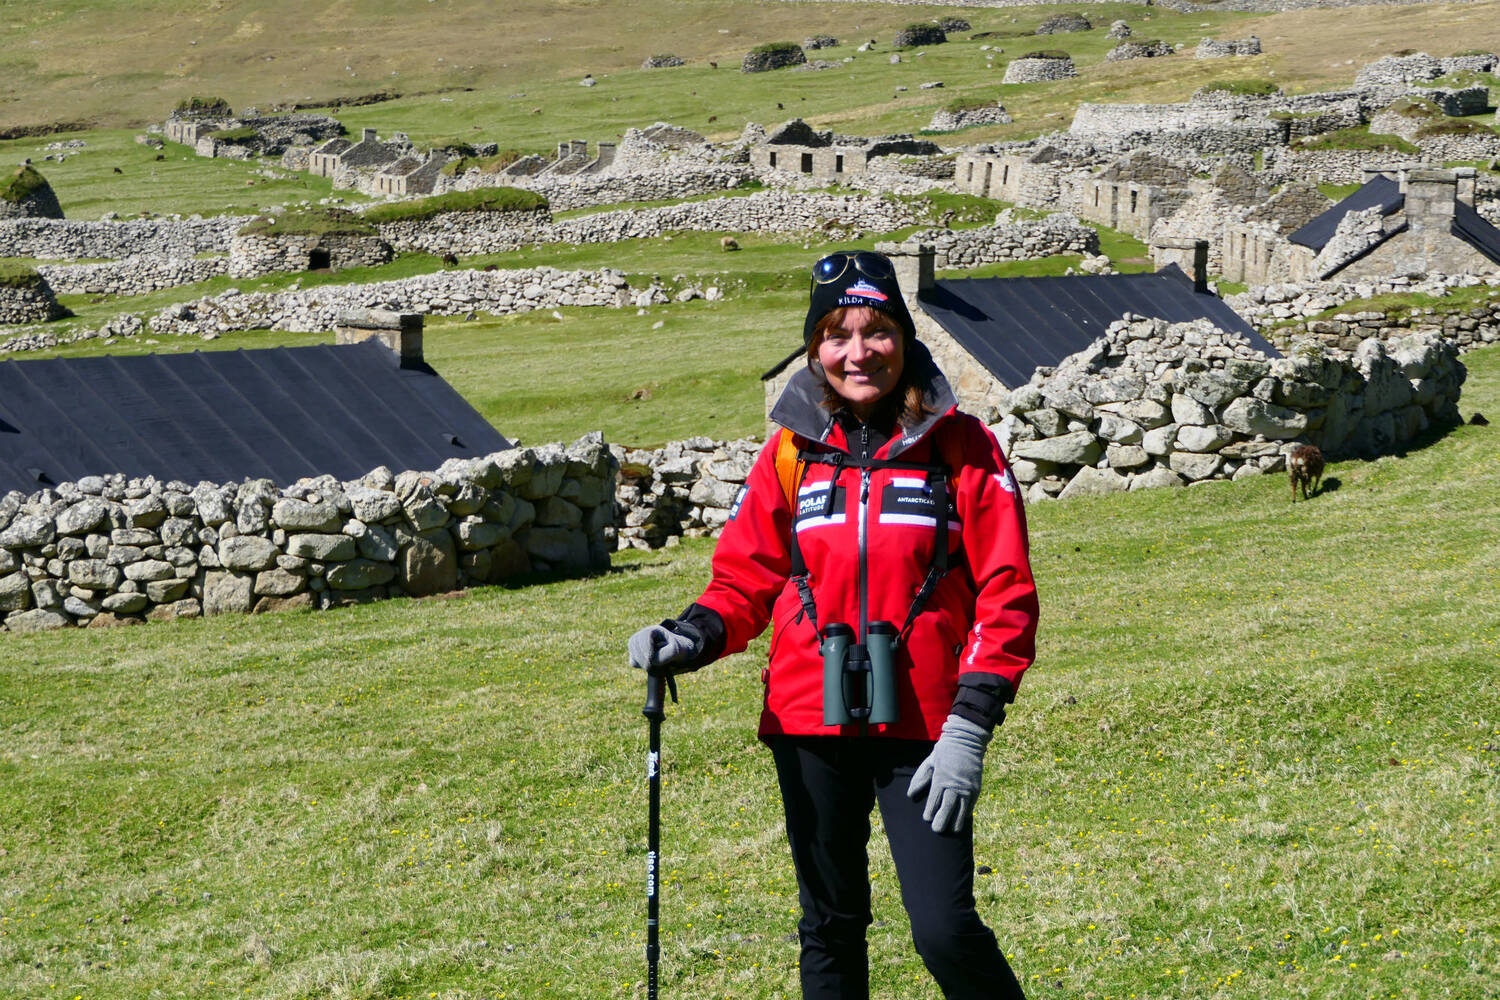 Lorraine Kelly stands with a walking pole in a field in Village Bay. Stone houses and sheep are in the background.